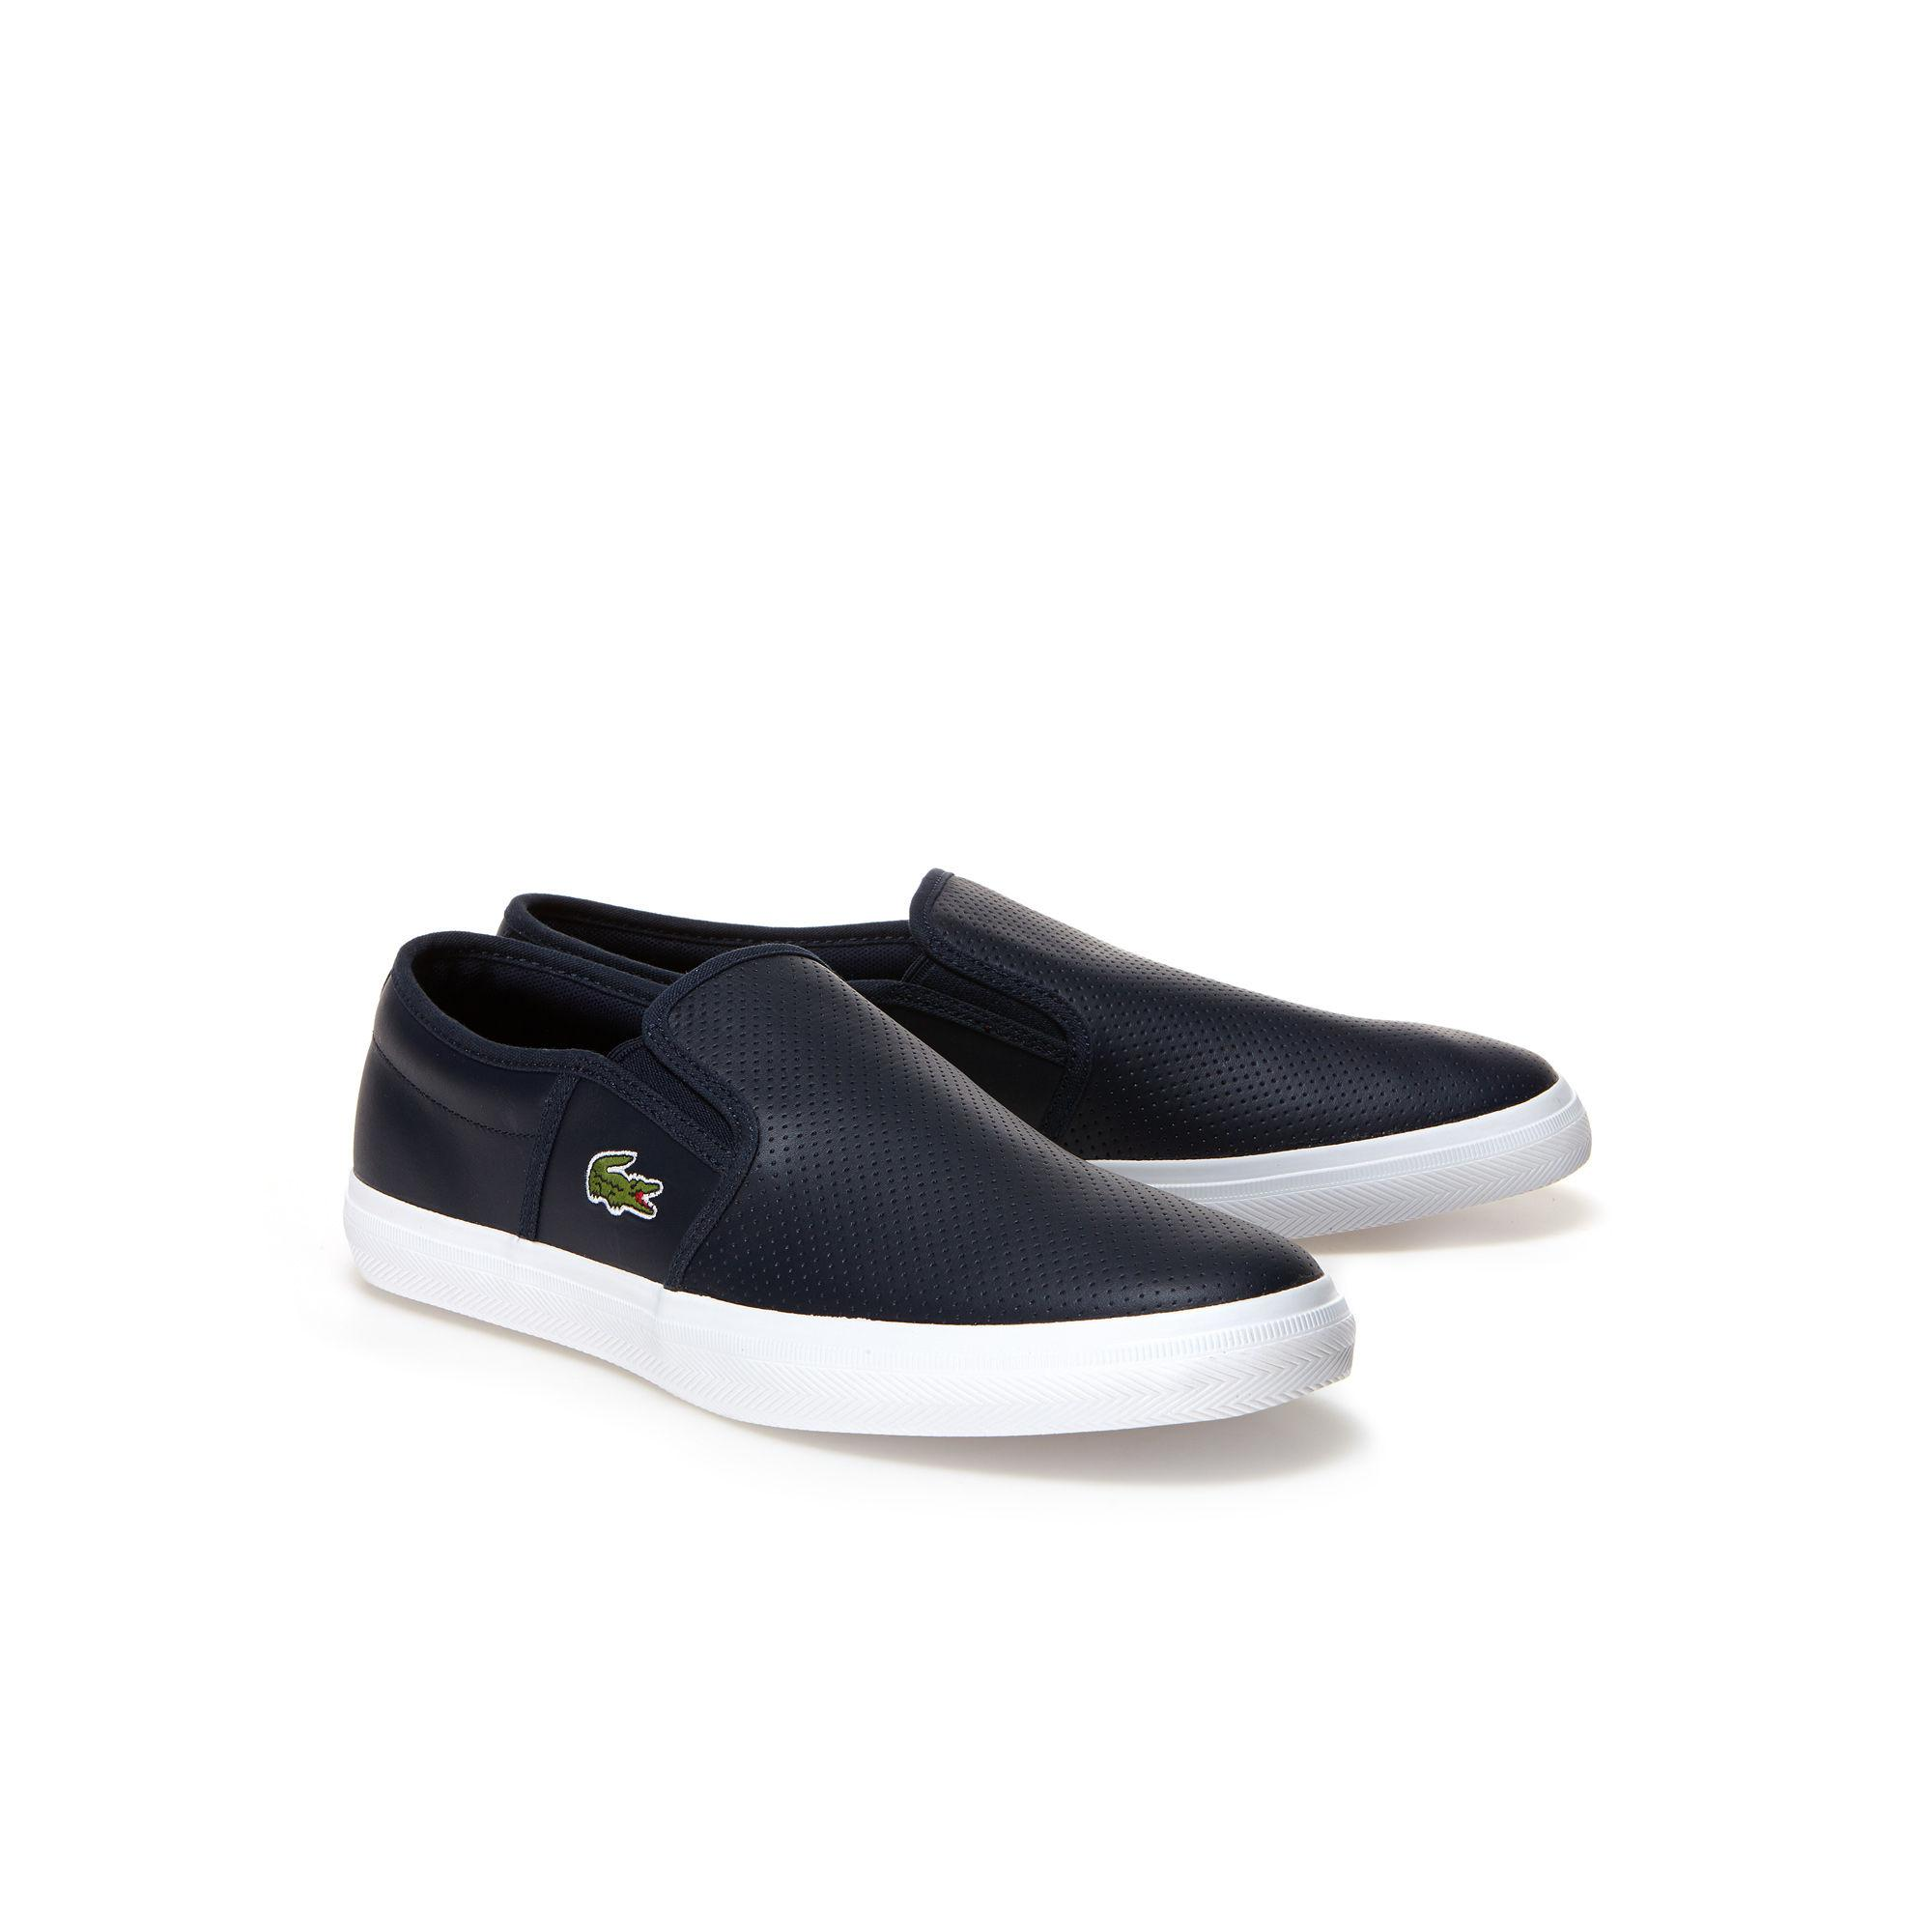 d101d37577f81 Lyst - Lacoste Gazon Leather Slip-ons in Blue for Men